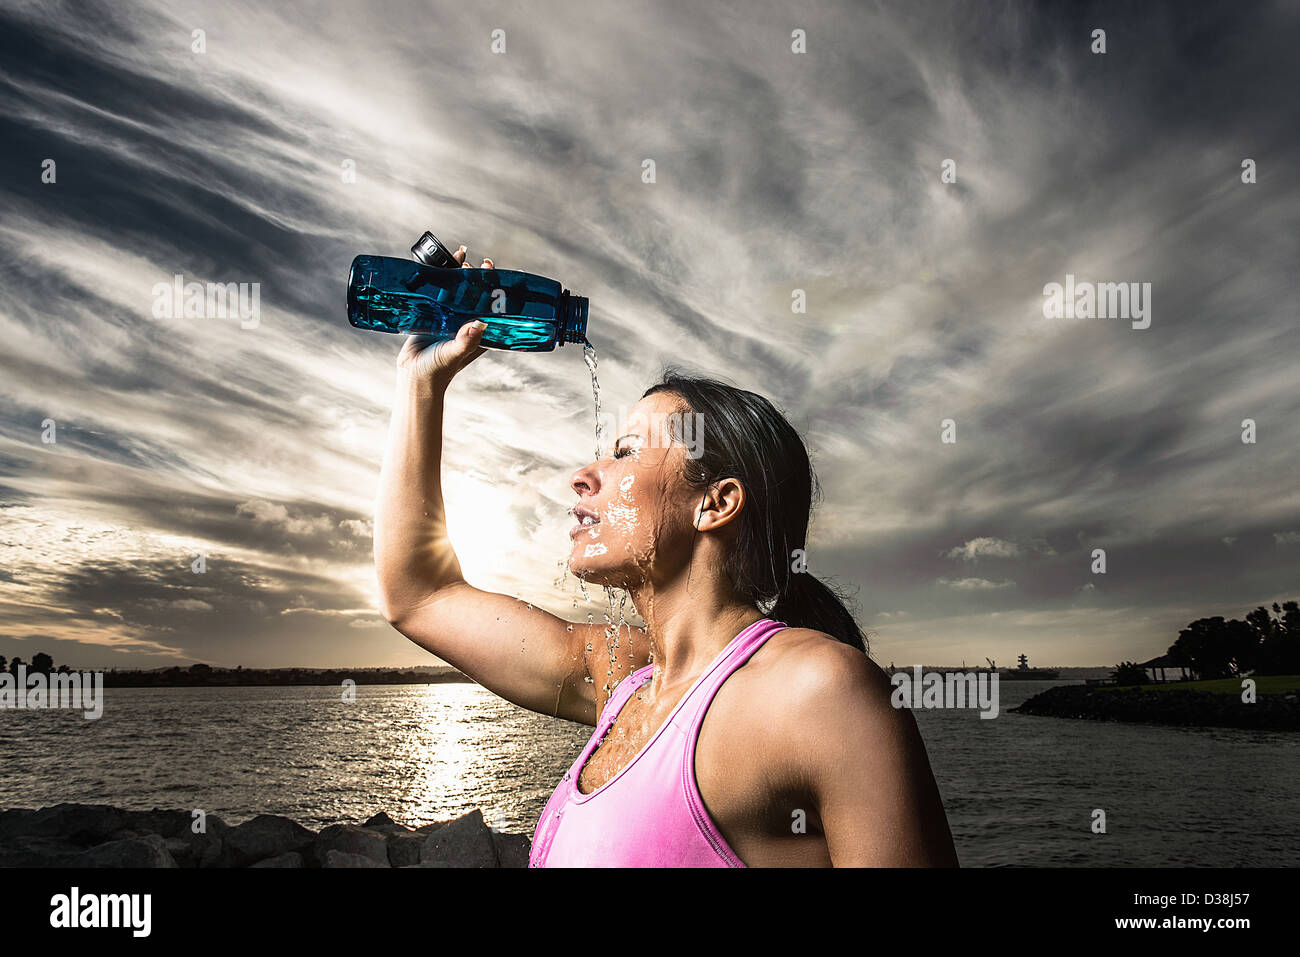 Runner pouring water on herself - Stock Image